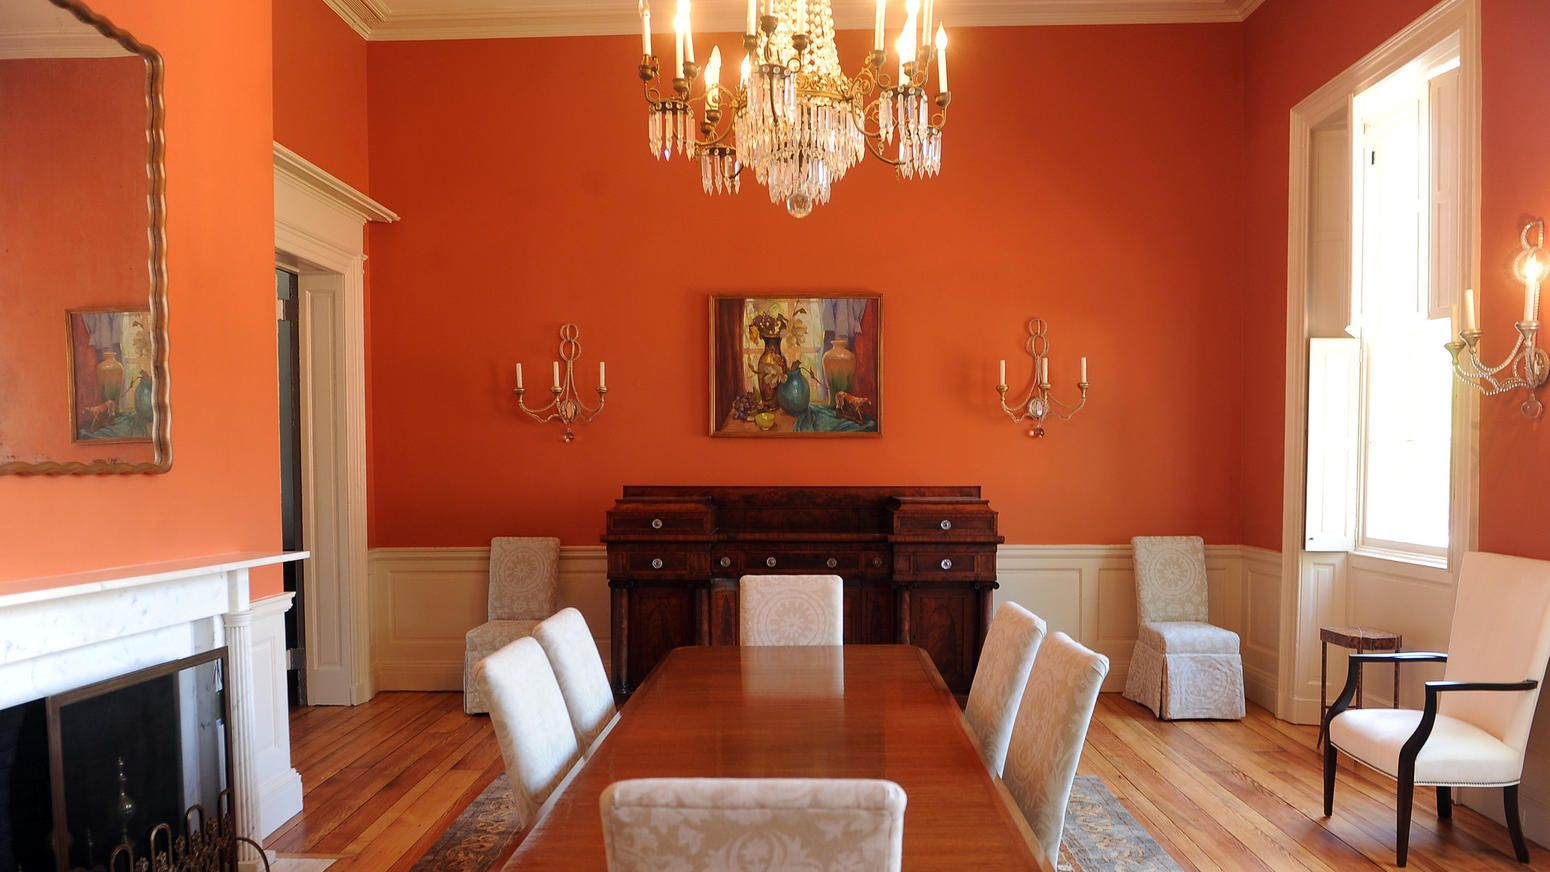 All American House At Carroll Mansion Showcases US Made Furnishings Student Interior Design